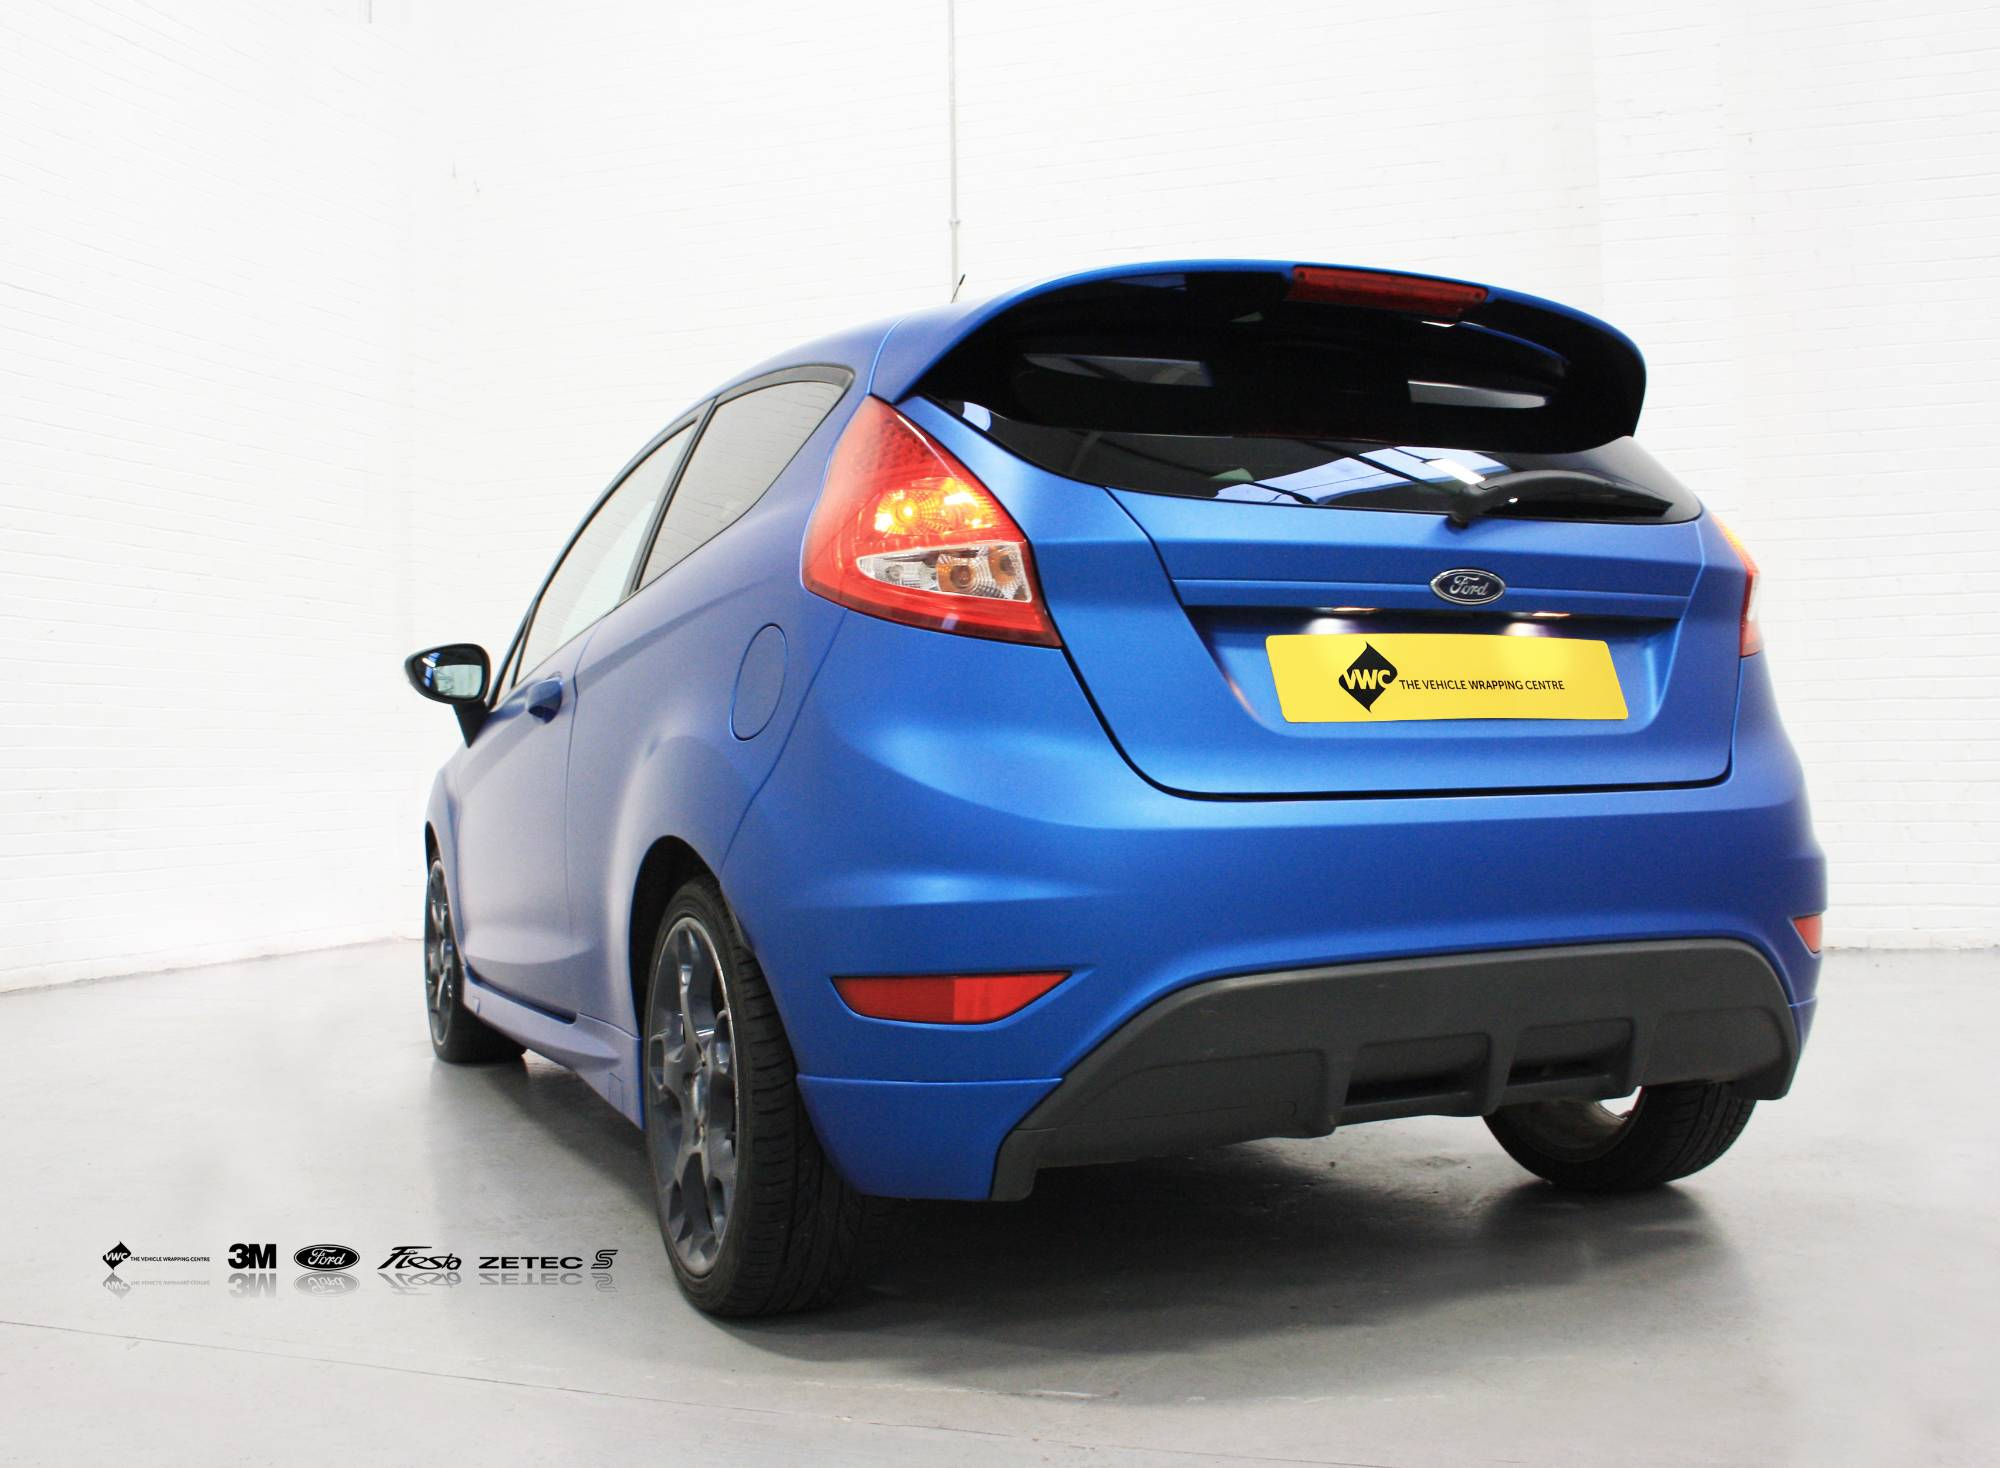 Ford Fiesta 3m Matte Metallic Blue Personal Vehicle Wrap